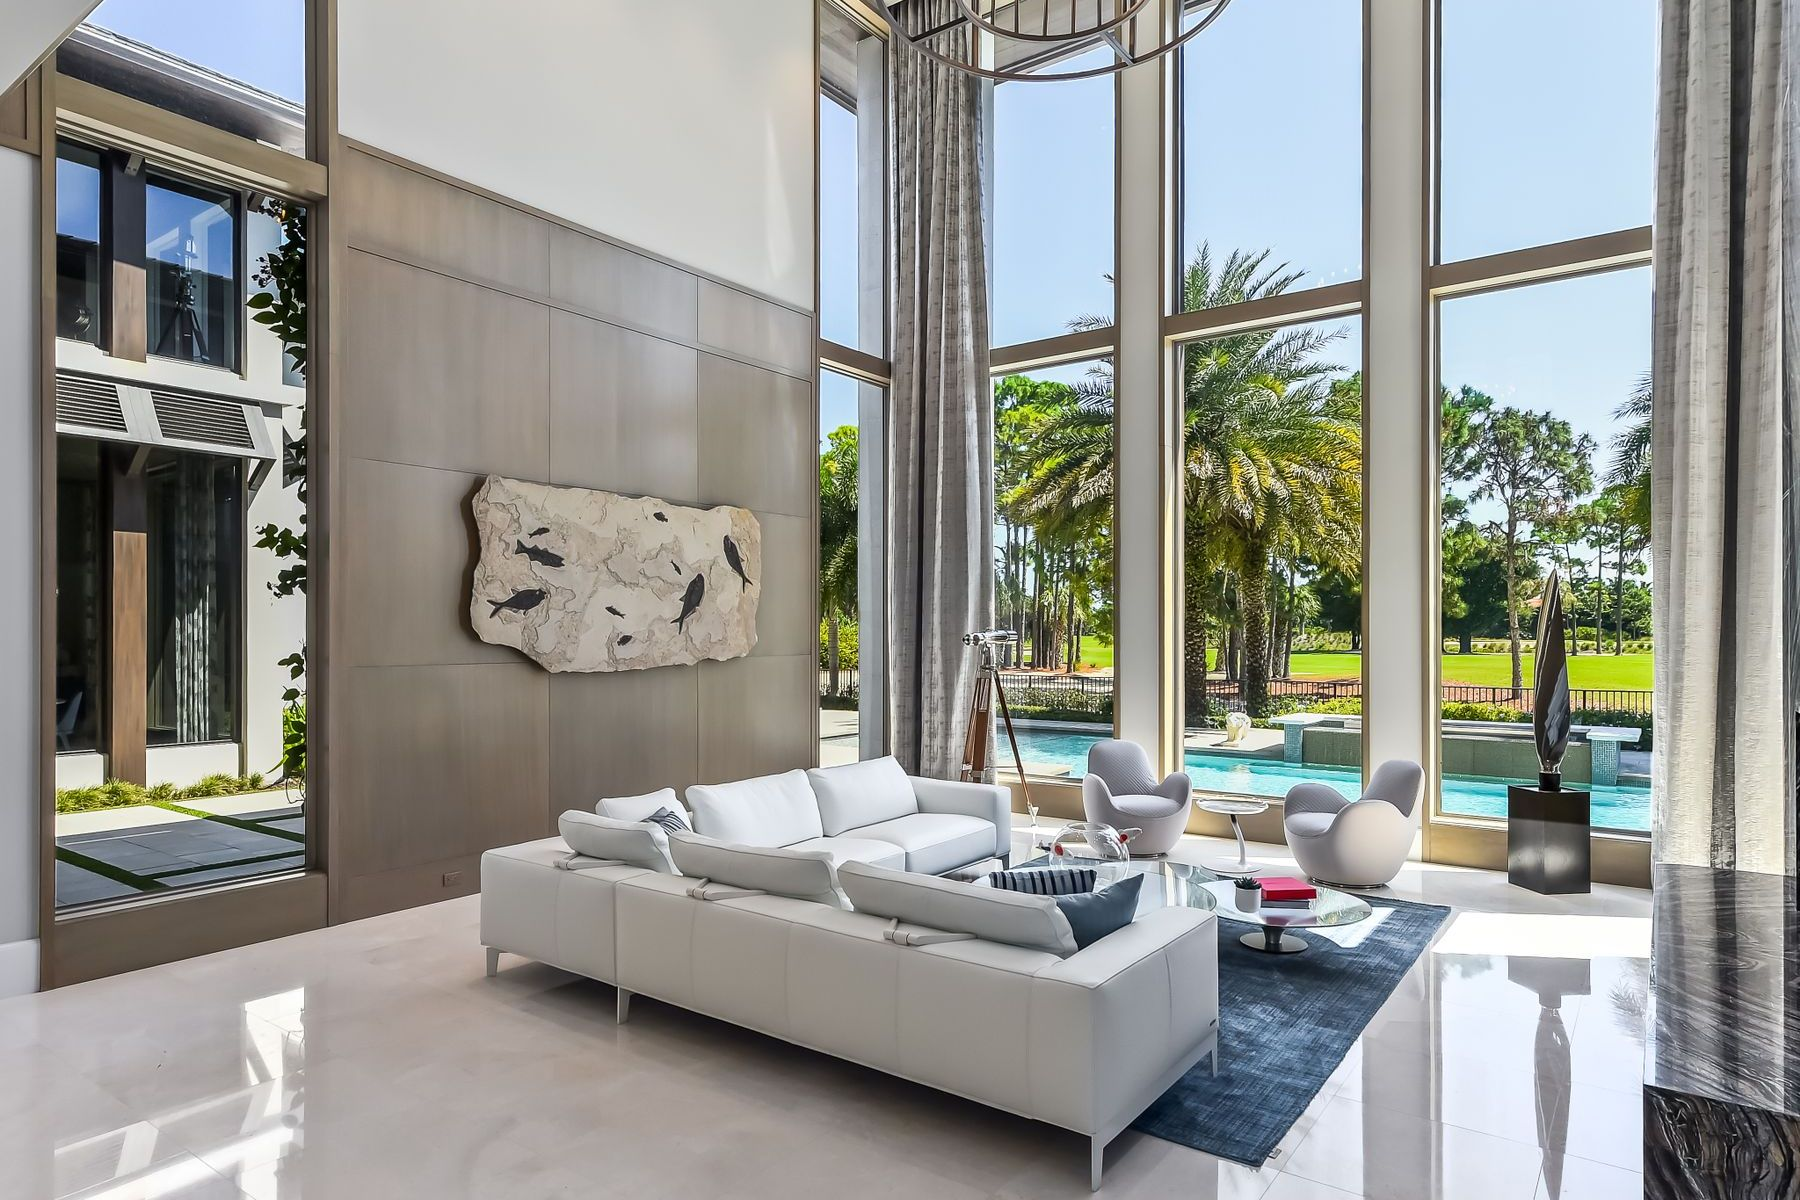 Single Family Homes for Sale at Exquisite Contemporary 11749 Bella Donna Court Palm Beach Gardens, Florida 33418 United States